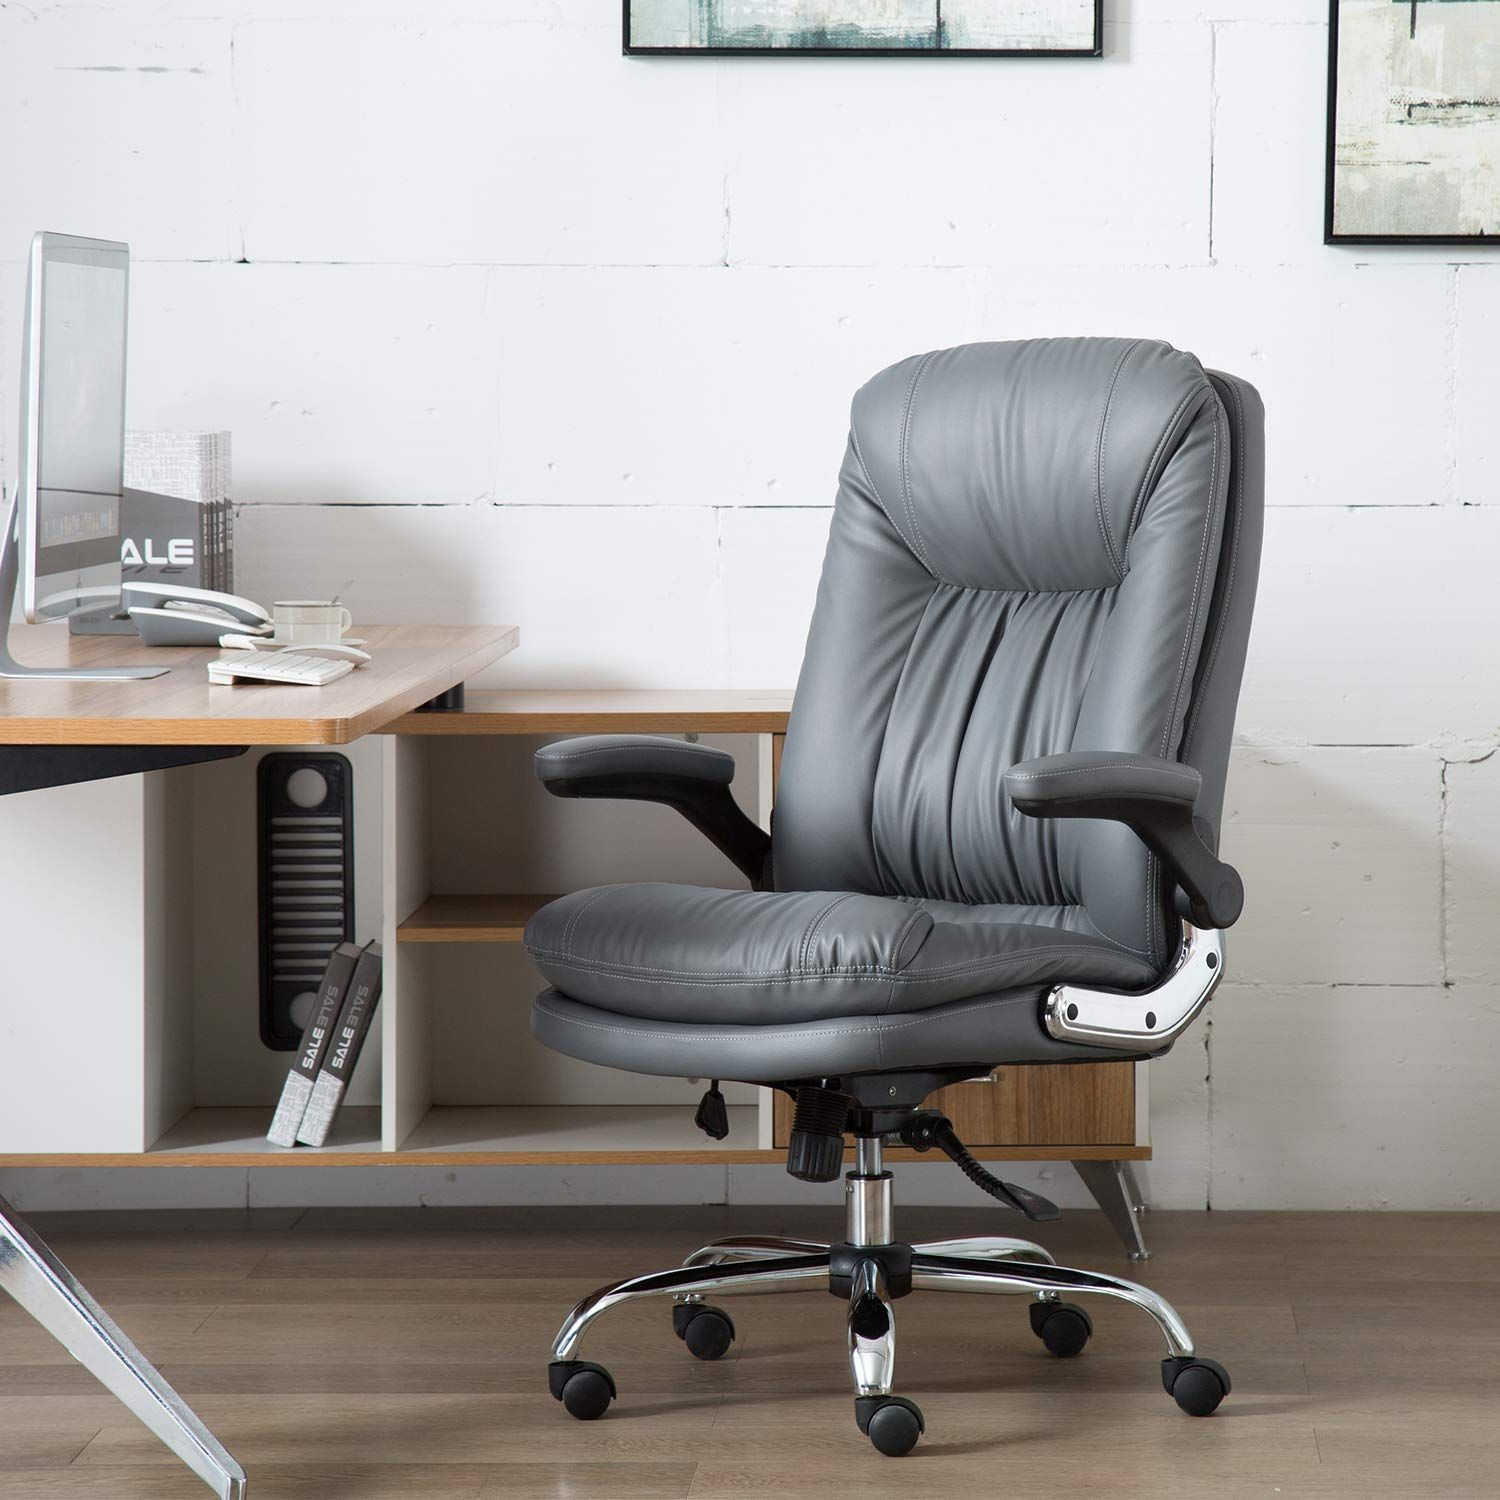 Office Chair Office Chair Executive Office Chairs Chair Office chair with flip up arms